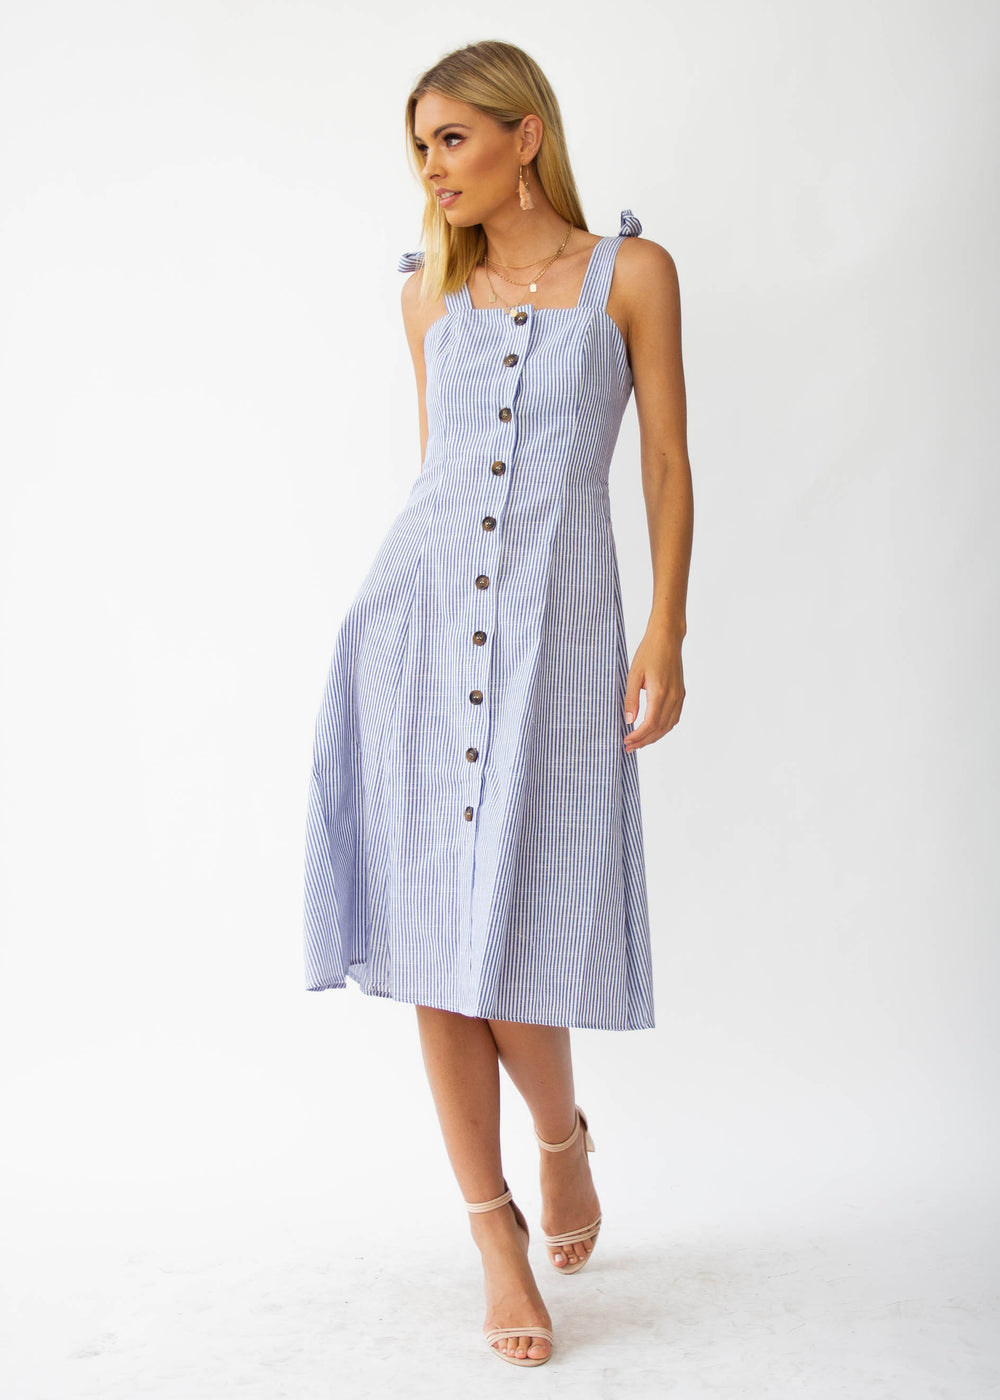 Better Left Unsaid Midi Dress - Blue Stripe